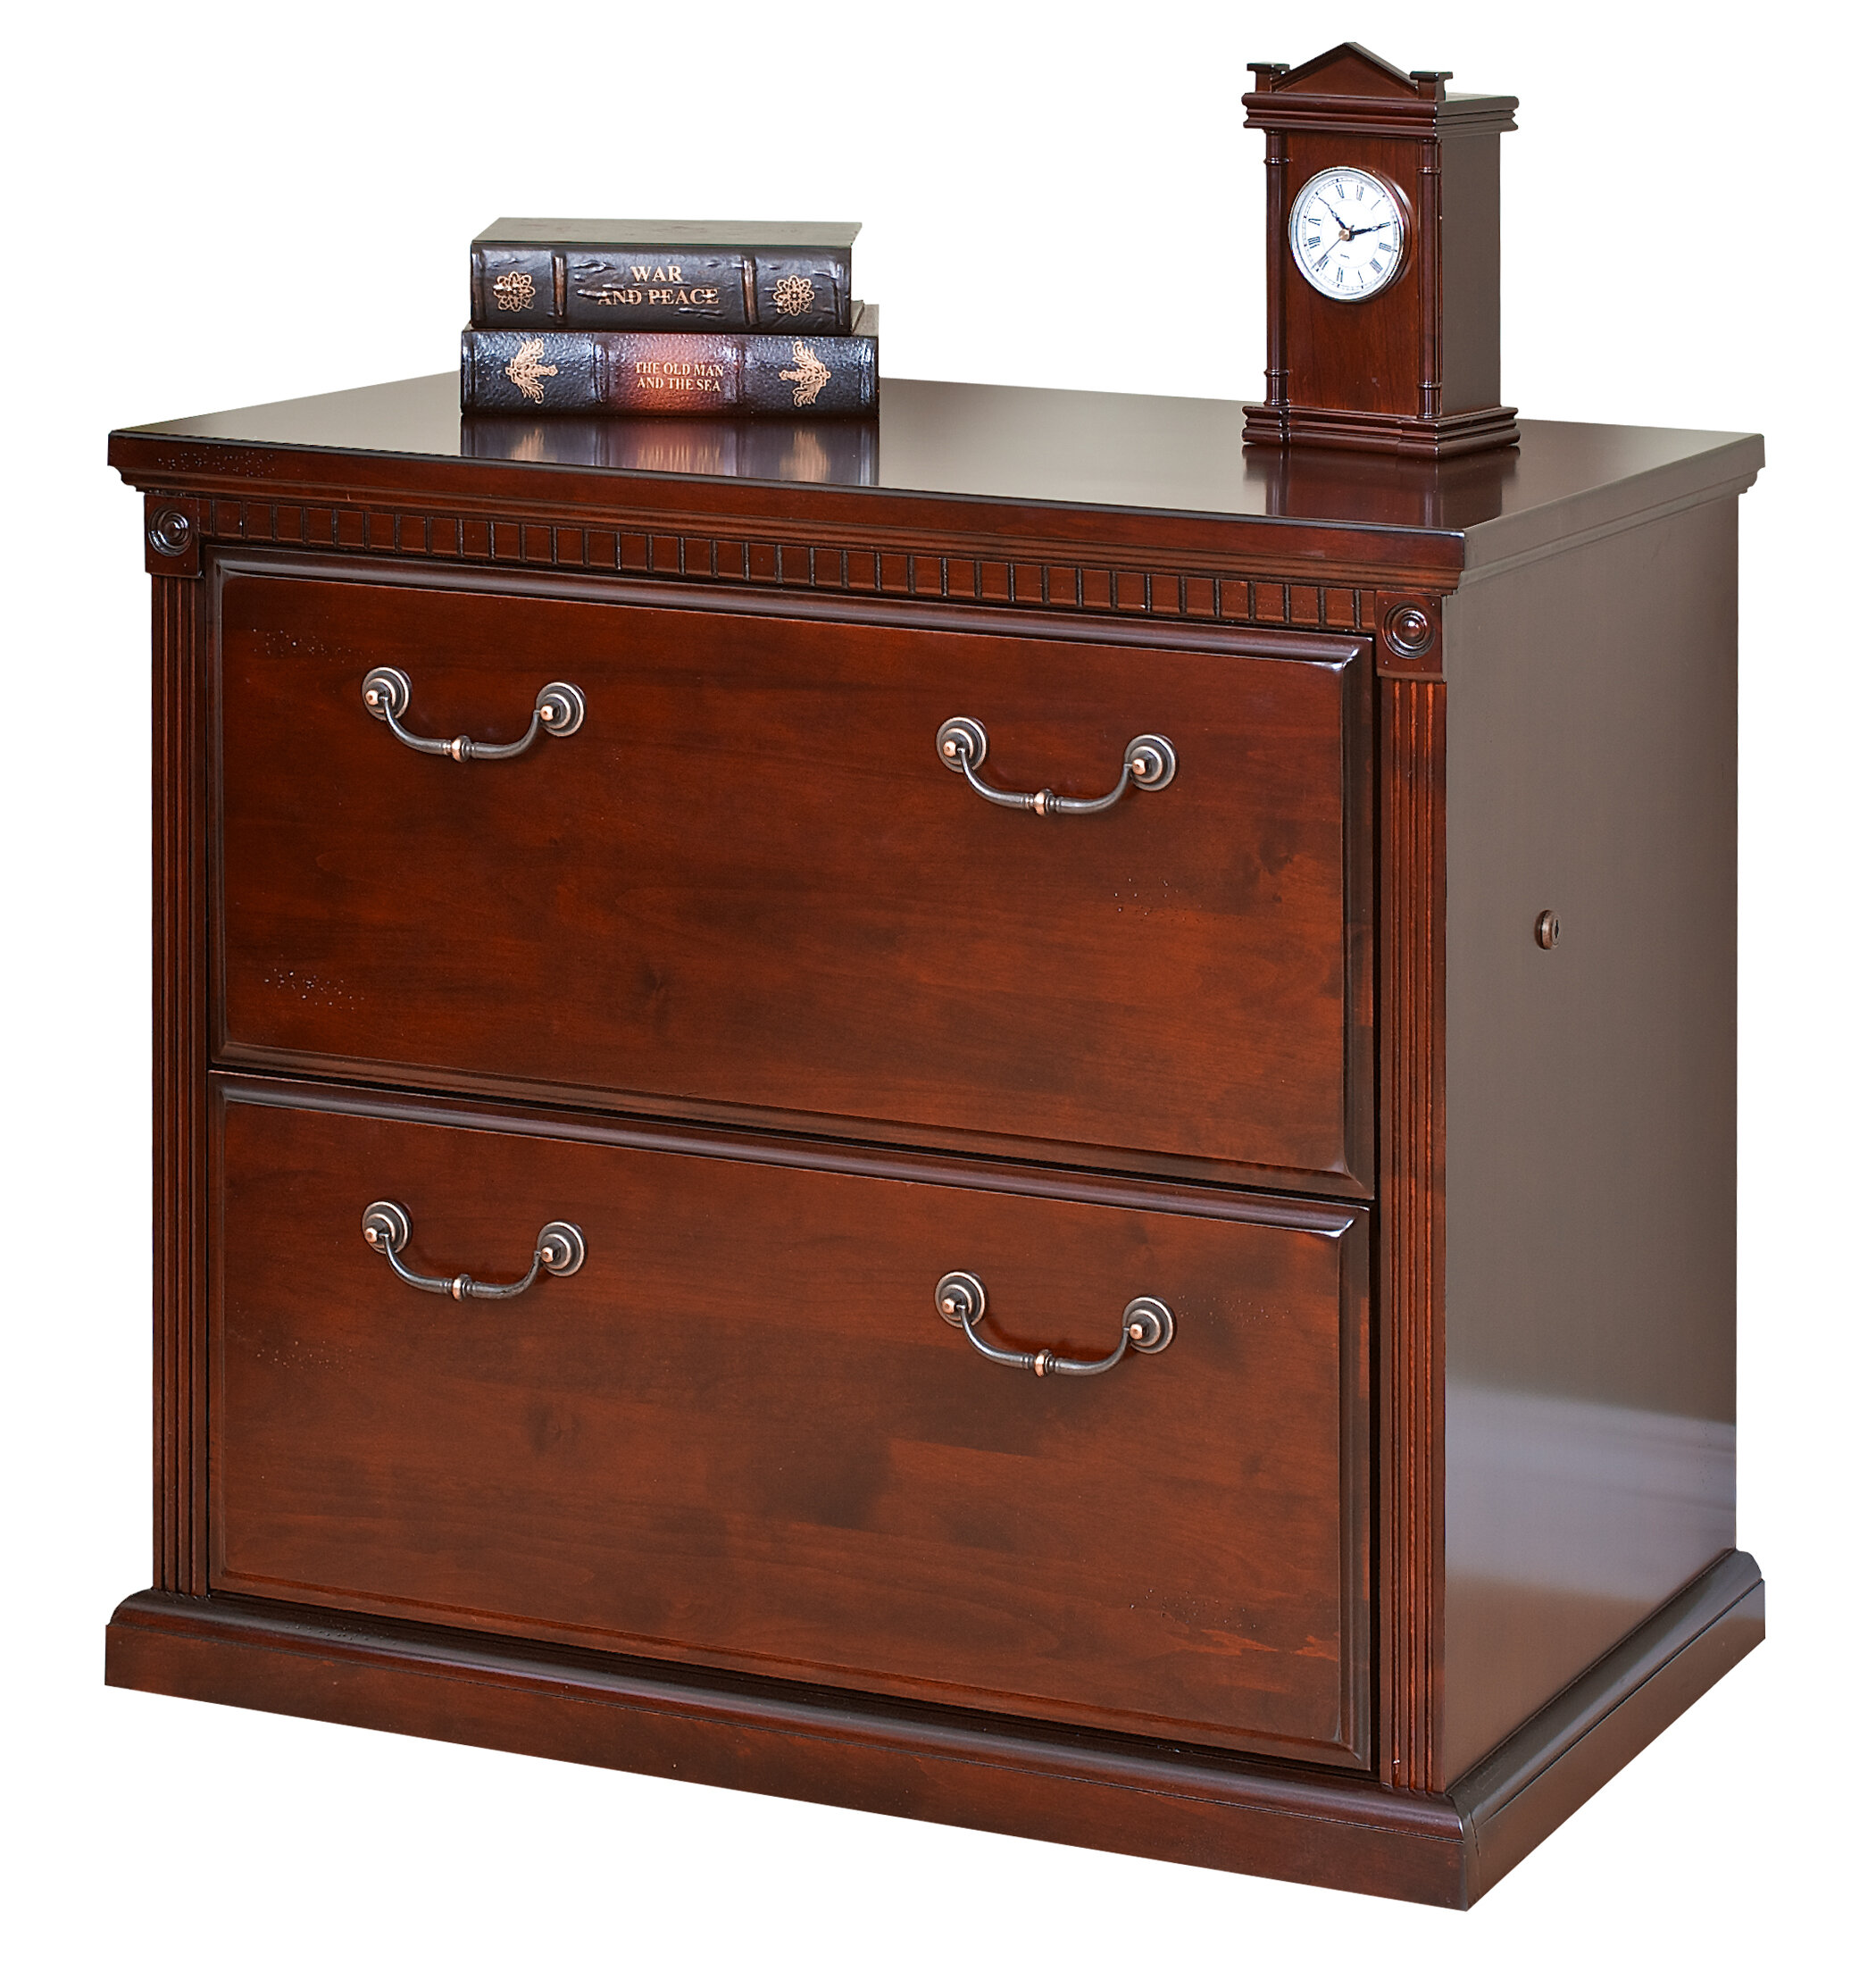 ga target state innovative filing or cabinets finish file homeoffice multipurpose furniture vertical lock cabinet wood drawers office construction black mahogany metal drawer letter sweet legal constructionmahogany storage